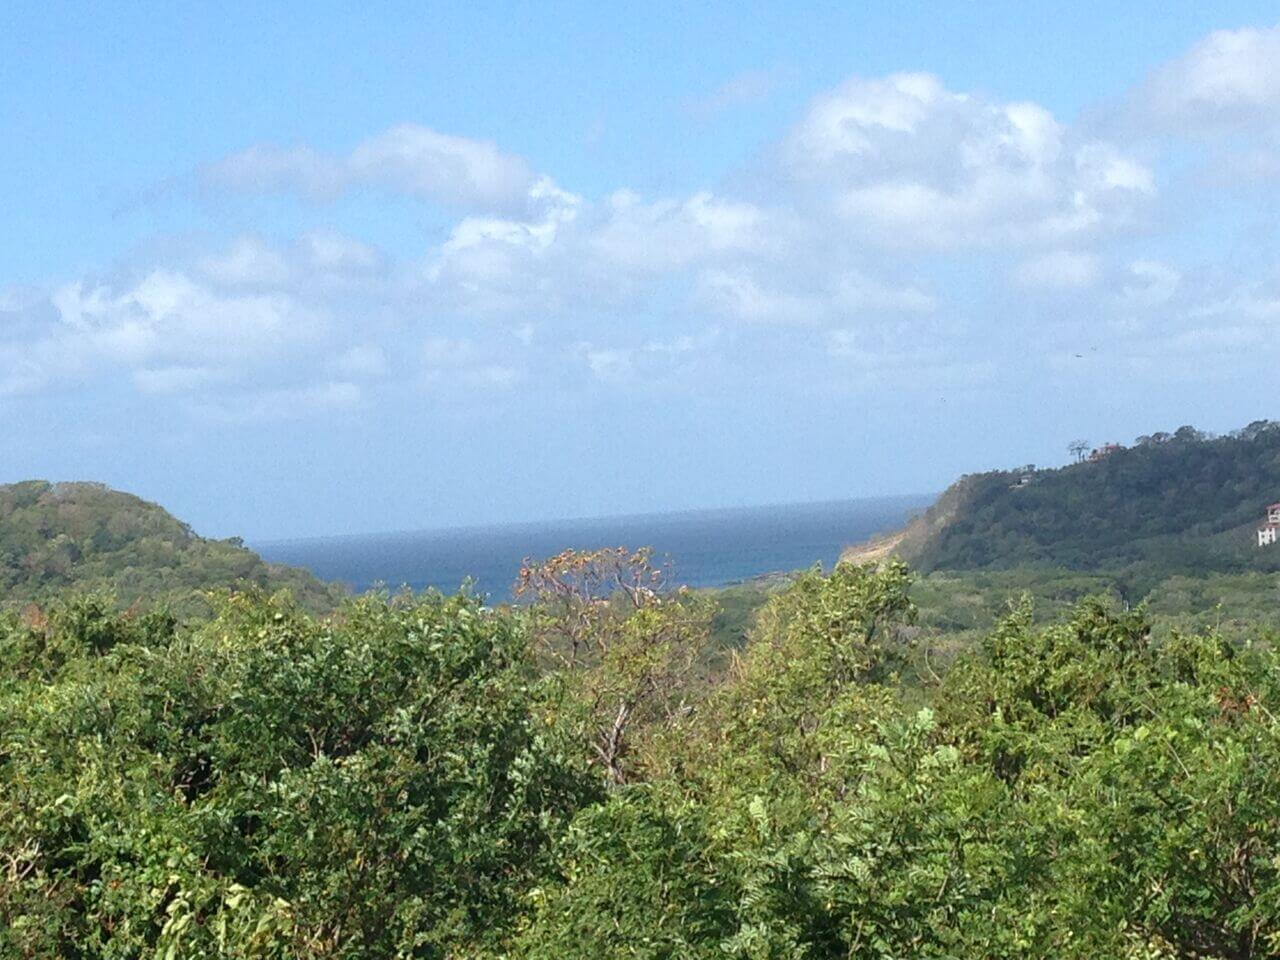 45 Acres of Amazing Undeveloped Land With Ocean View